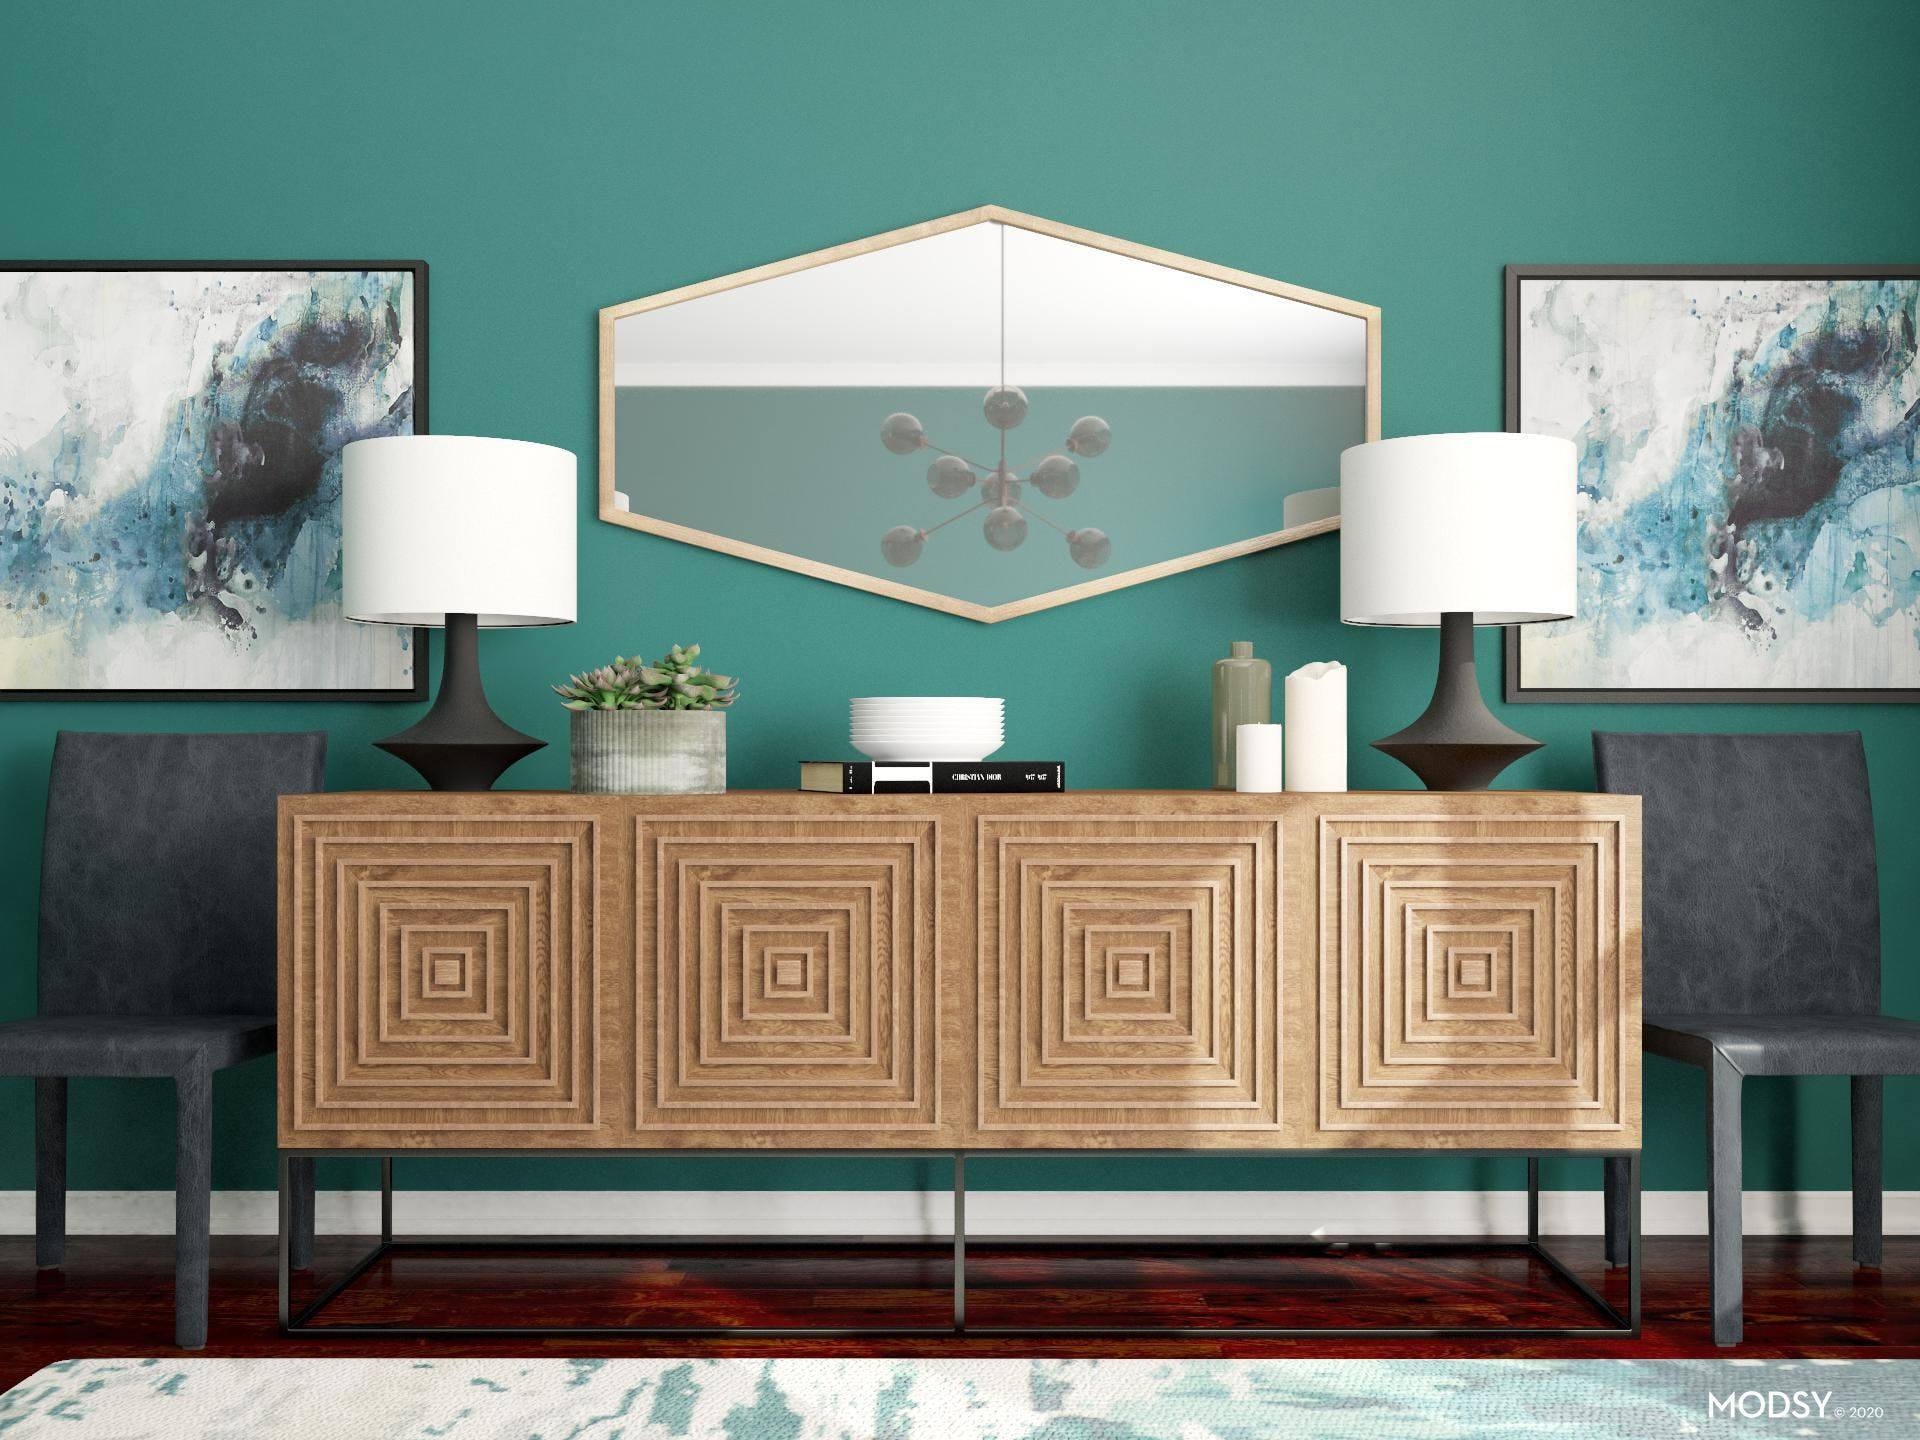 Feel With Color: Moody Dining